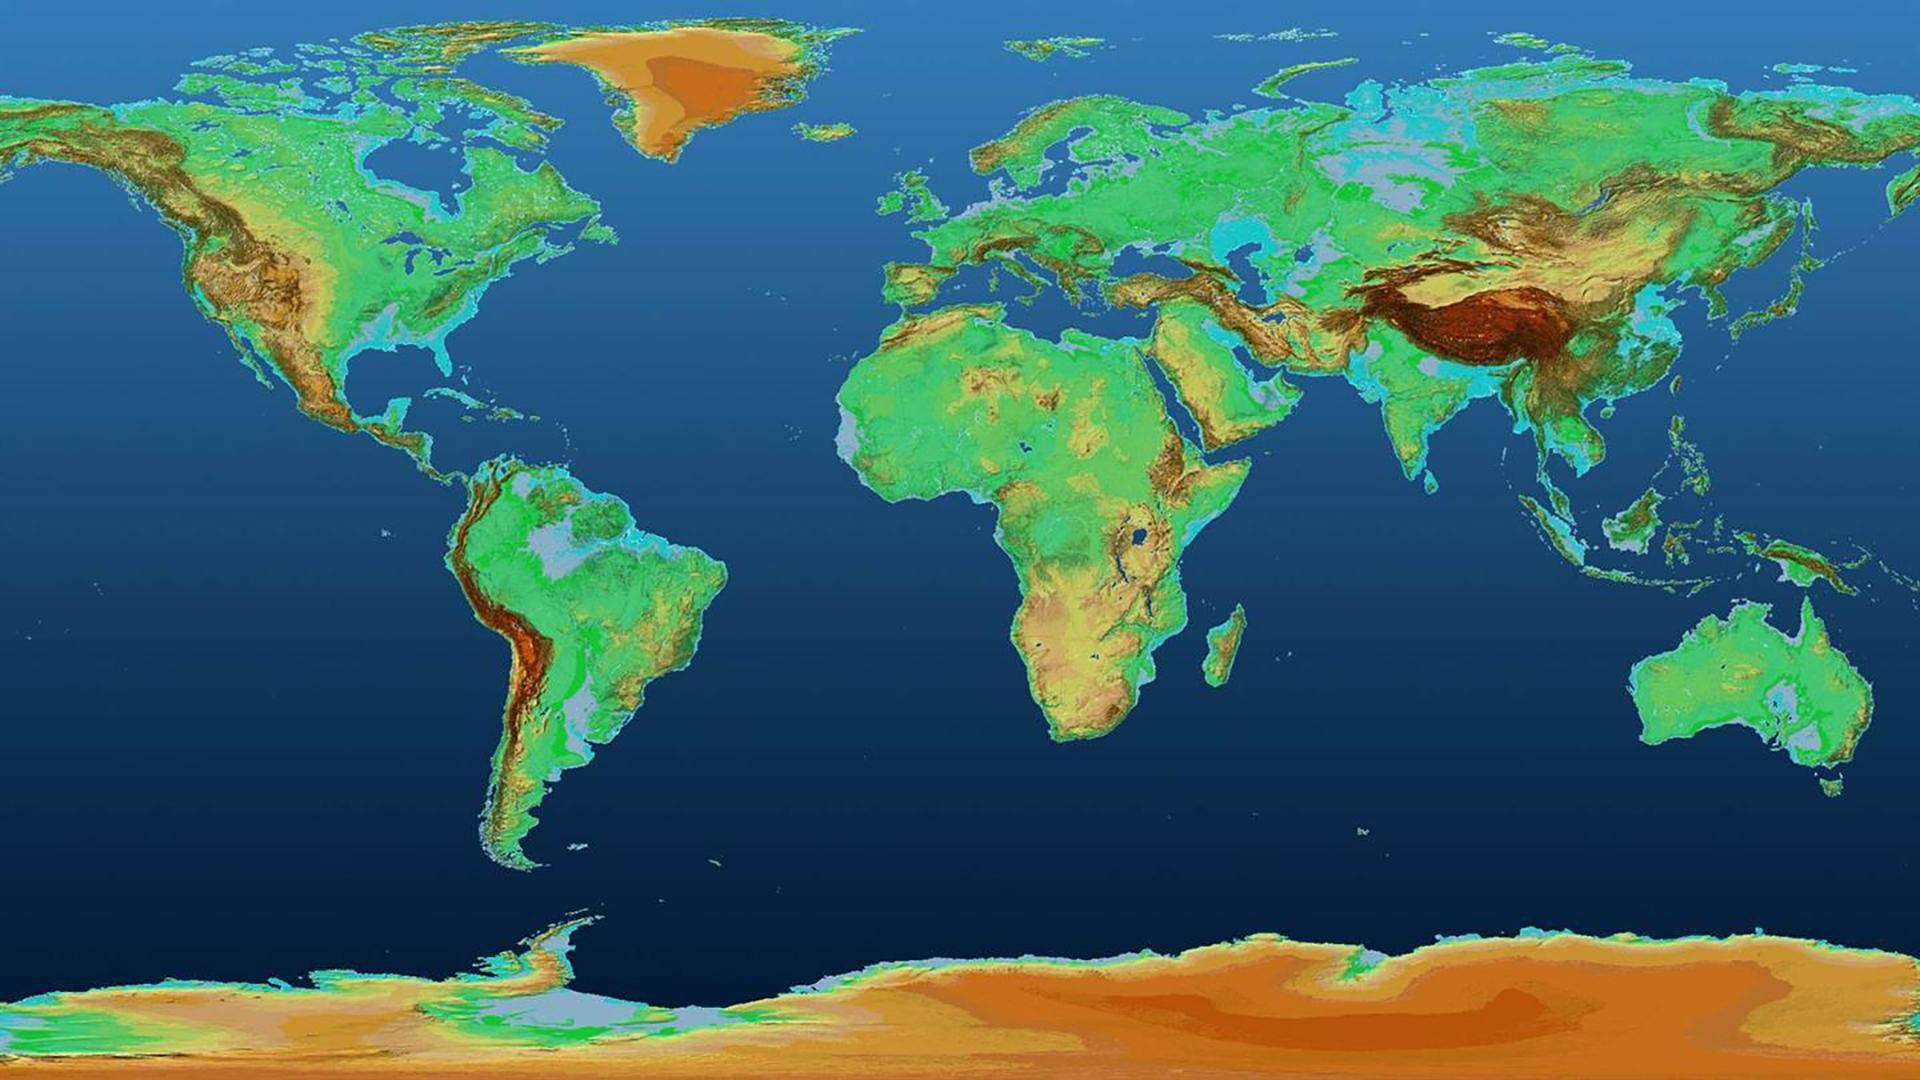 Global TanDEM-X Digital Elevation Model